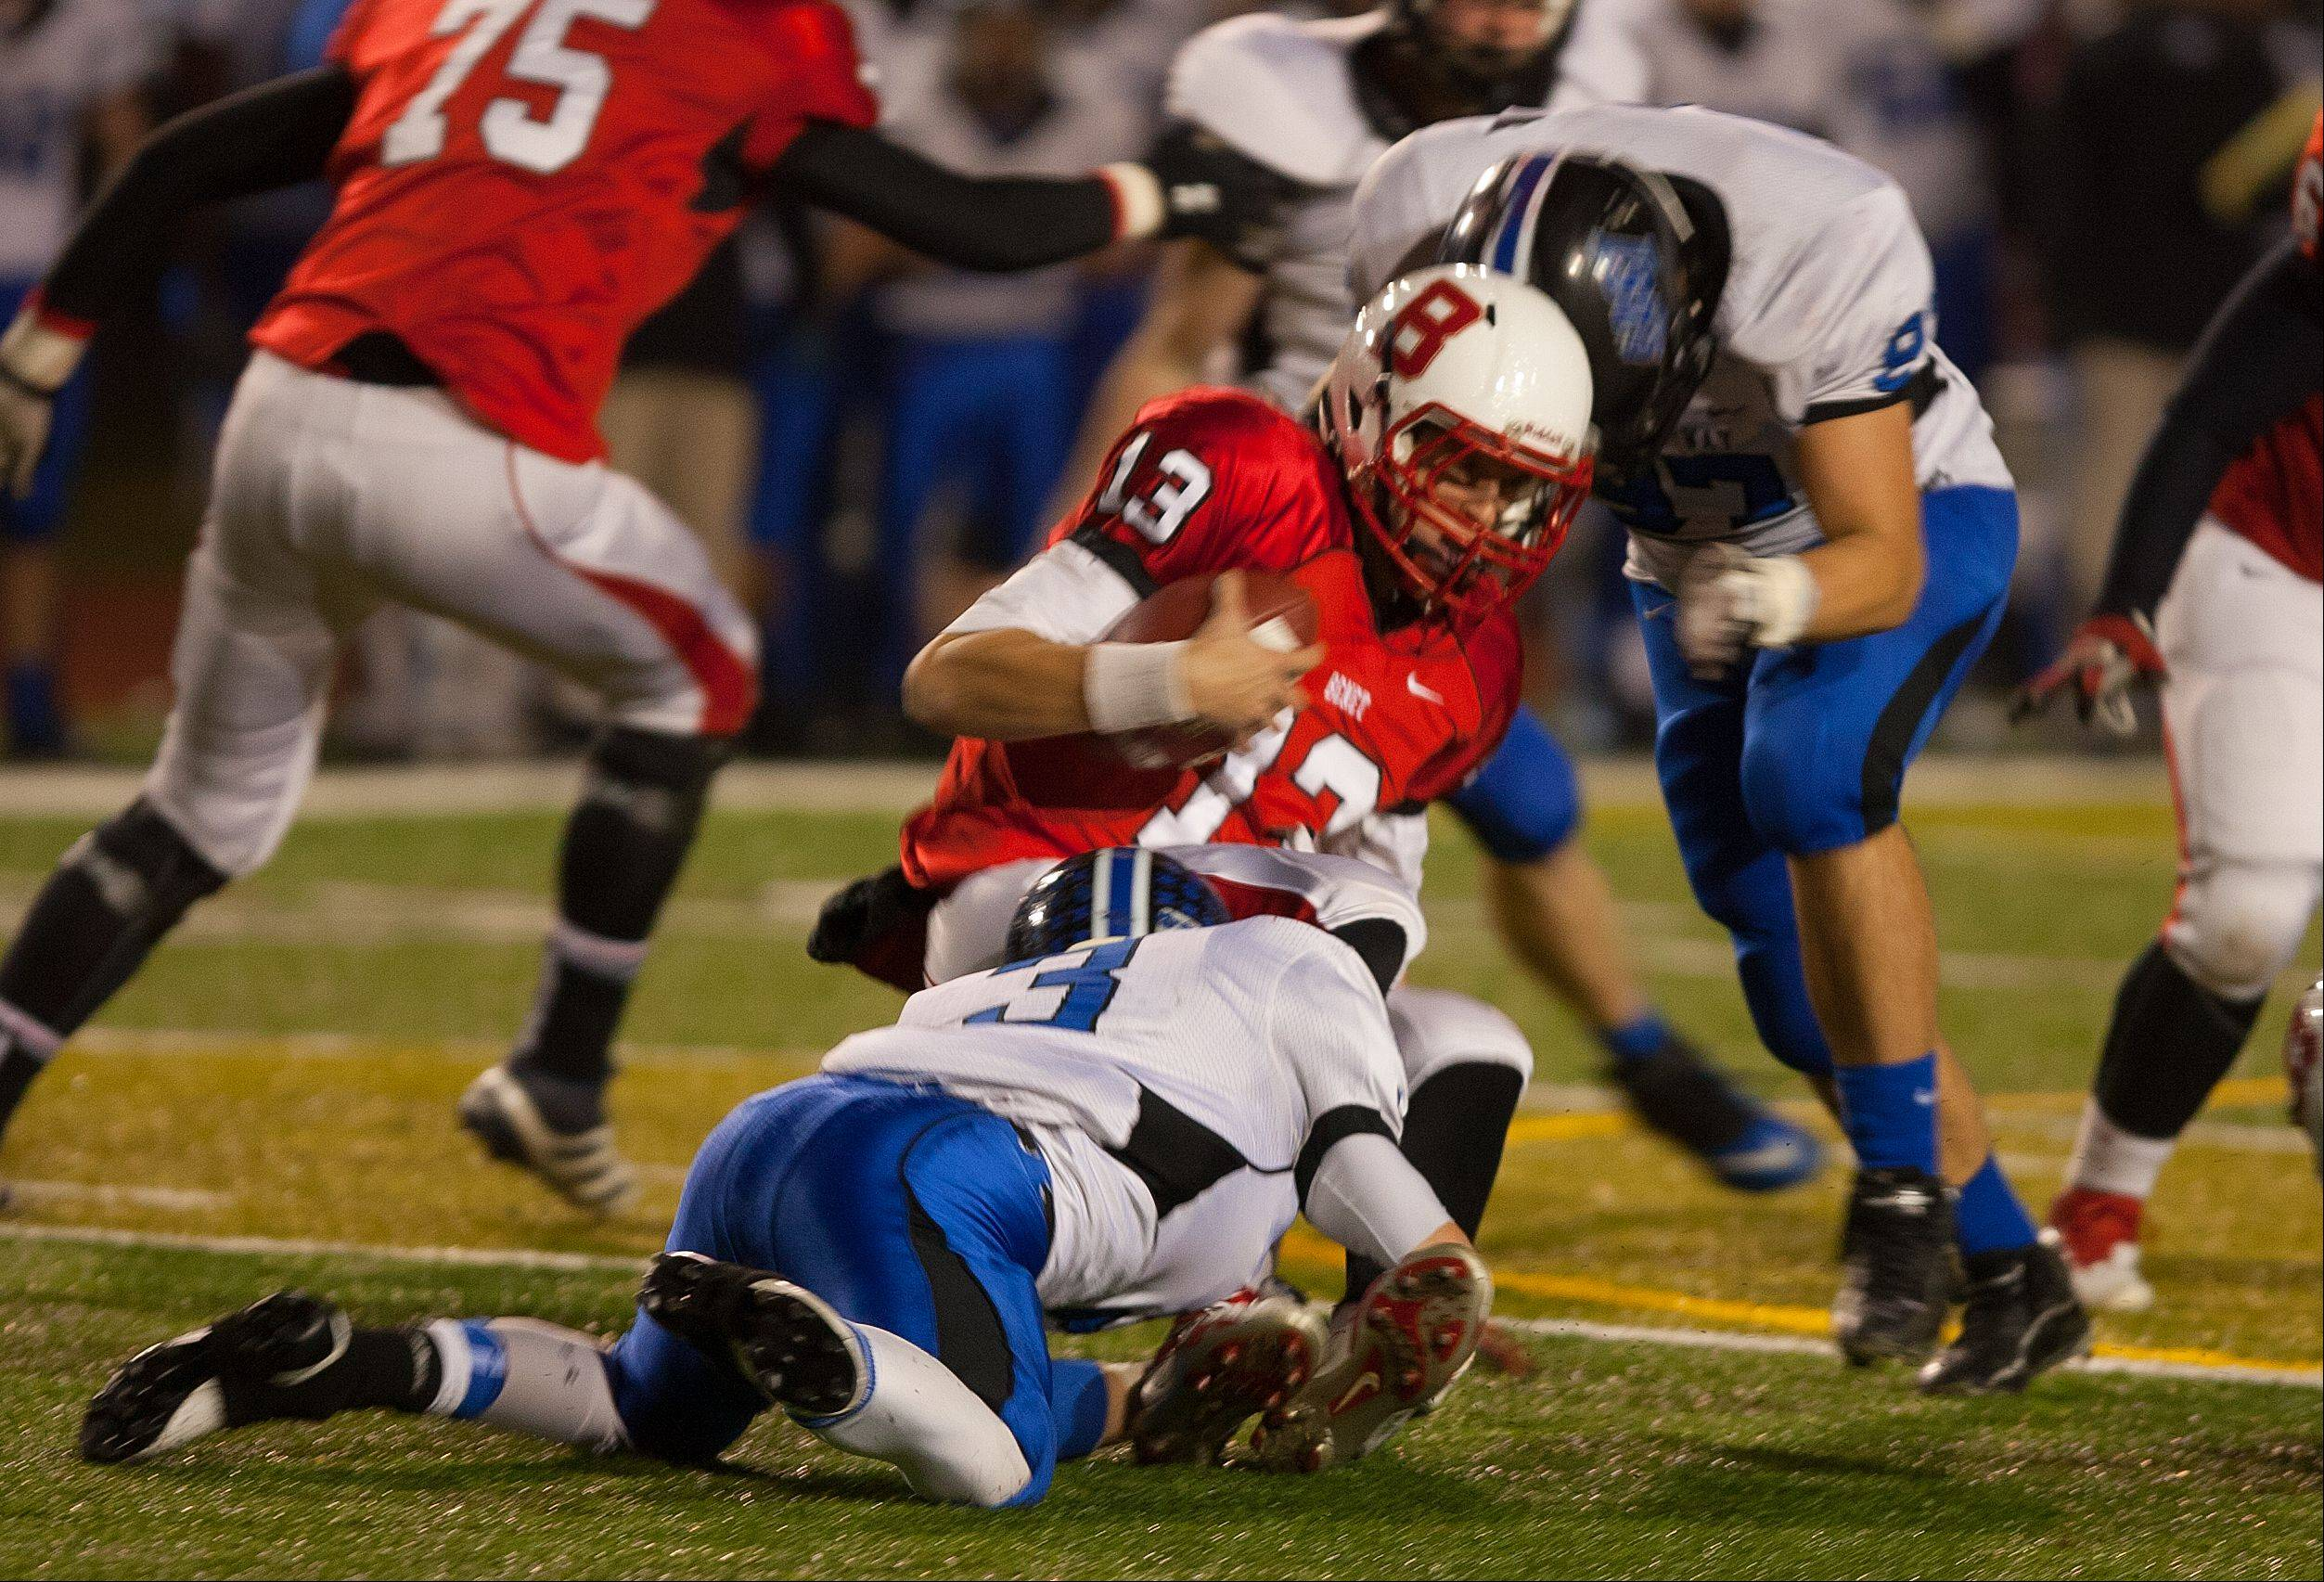 Benet quarterback Jack Beneventi (13) is tackled with an added personal foul by Lincoln-Way East's Scott Kresal (97), top, during Class 7A football semifinals at Benedictine.